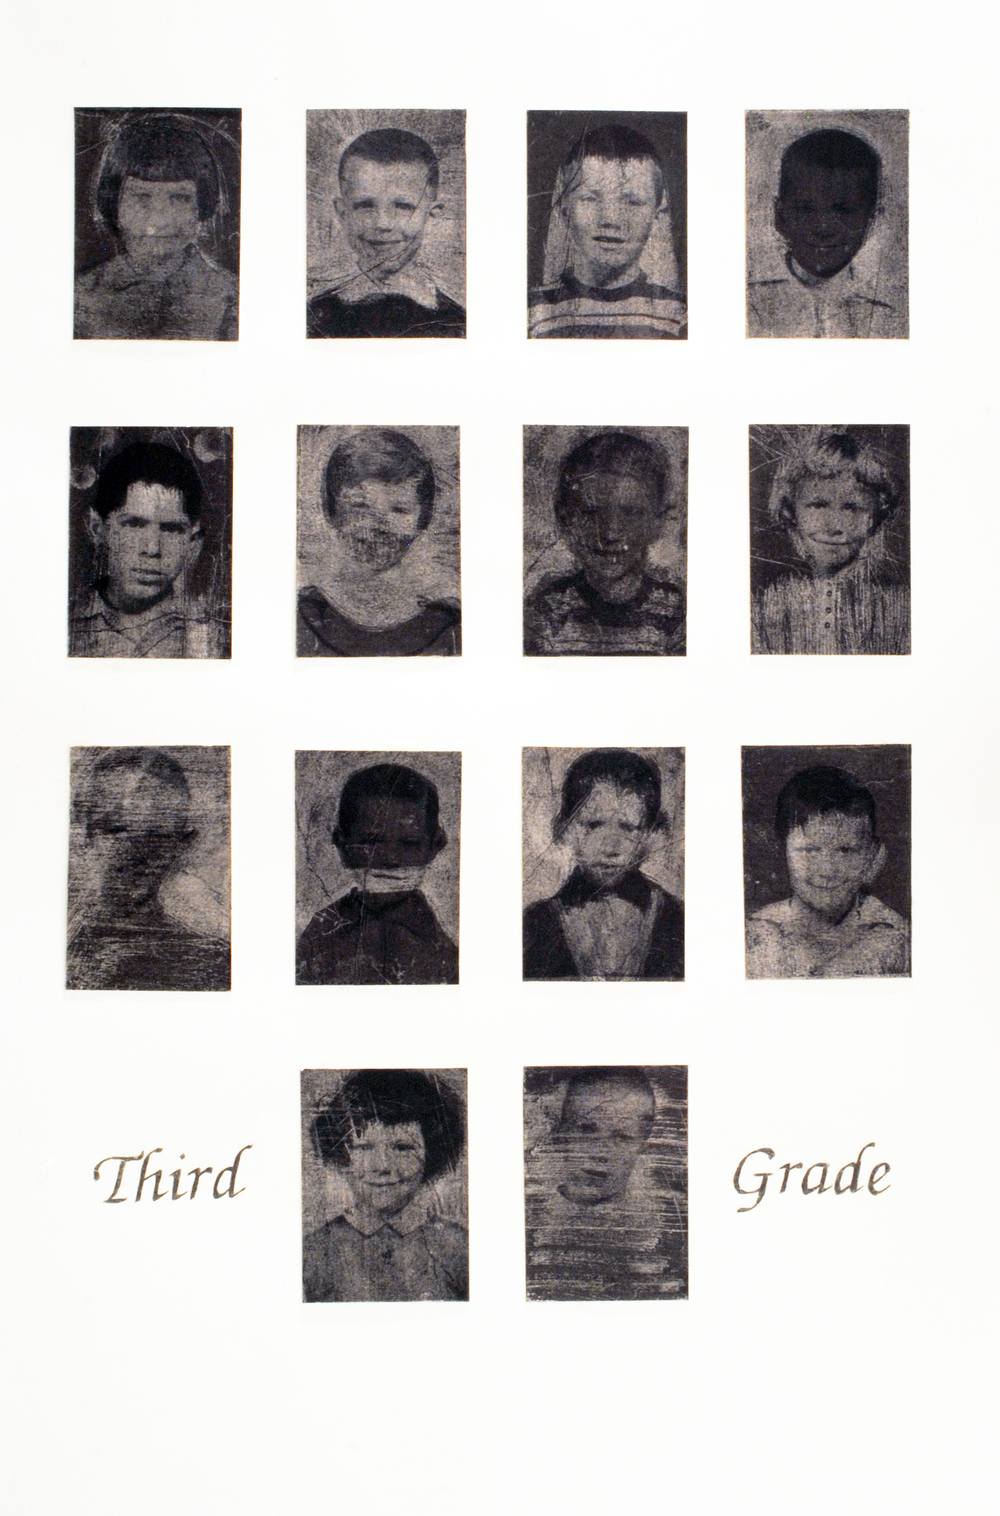 Third Grade (O Children # 00040)